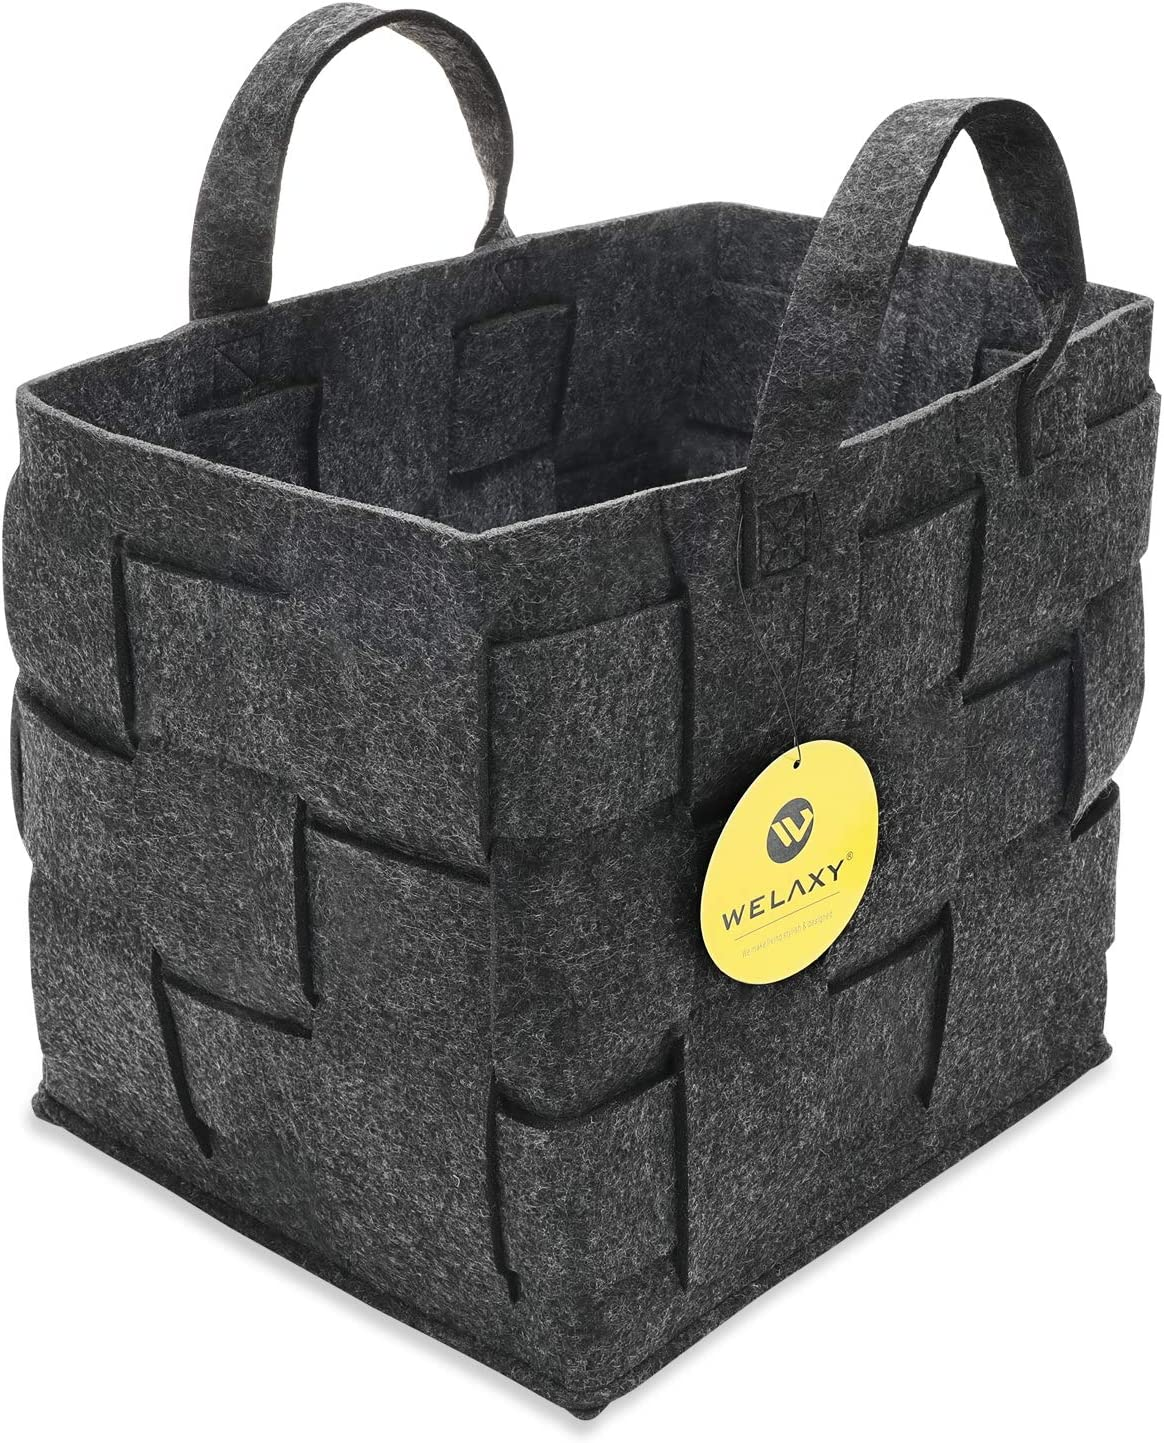 WELAXY Large Handmade Ranking TOP4 Woven Storage Handle Cubes 2021new shipping free shipping Bins Basket box